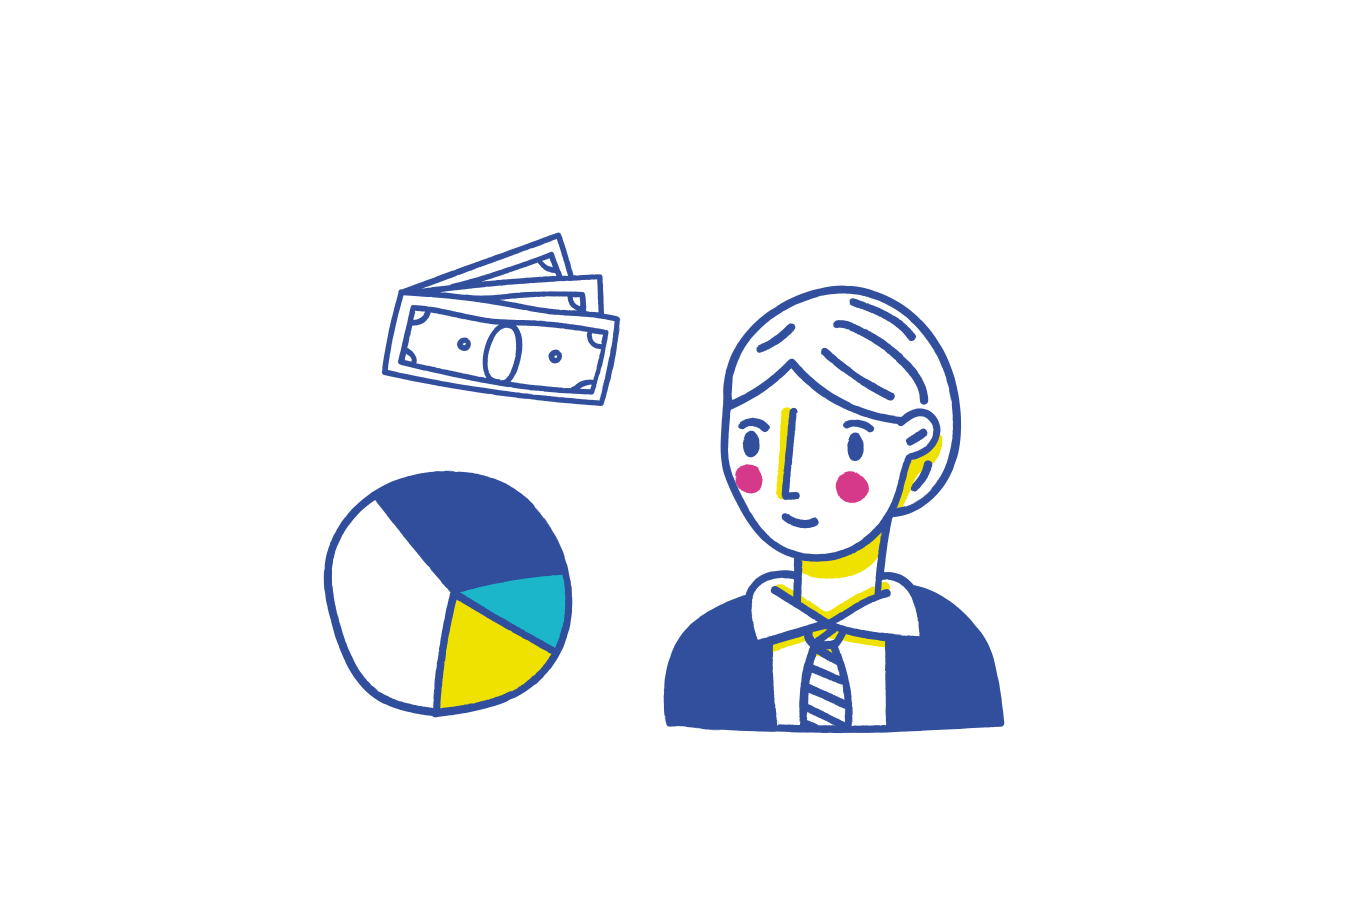 Financial report Clipart illustration in PNG, SVG